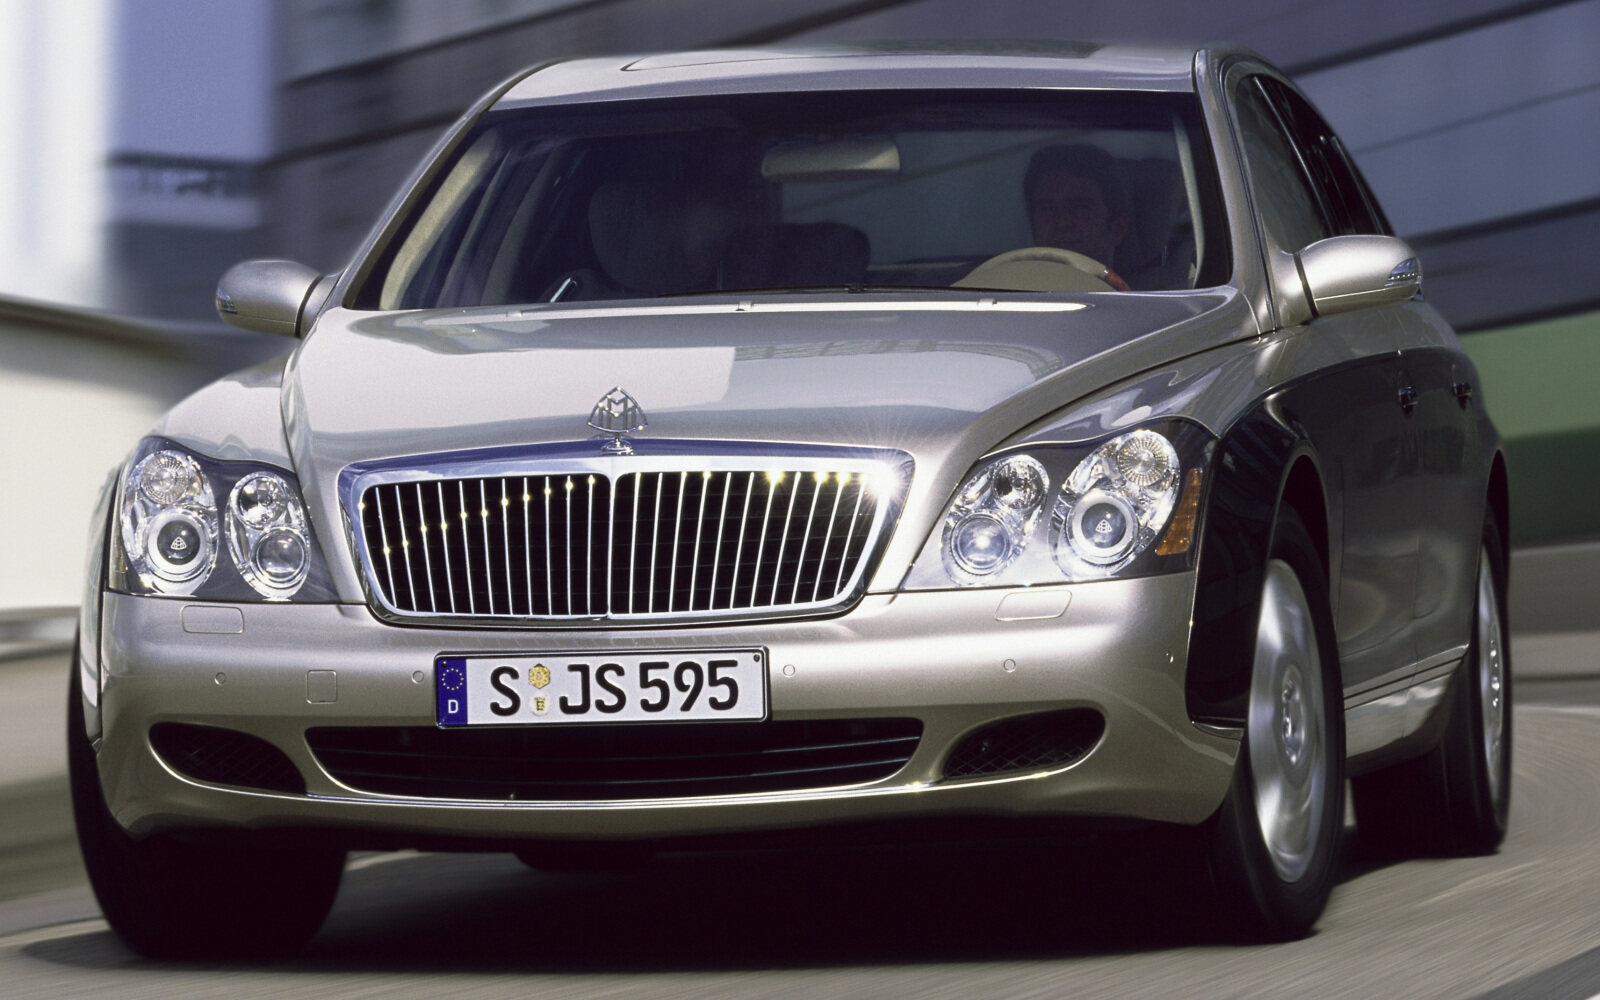 PKW4600010 Maybach 57